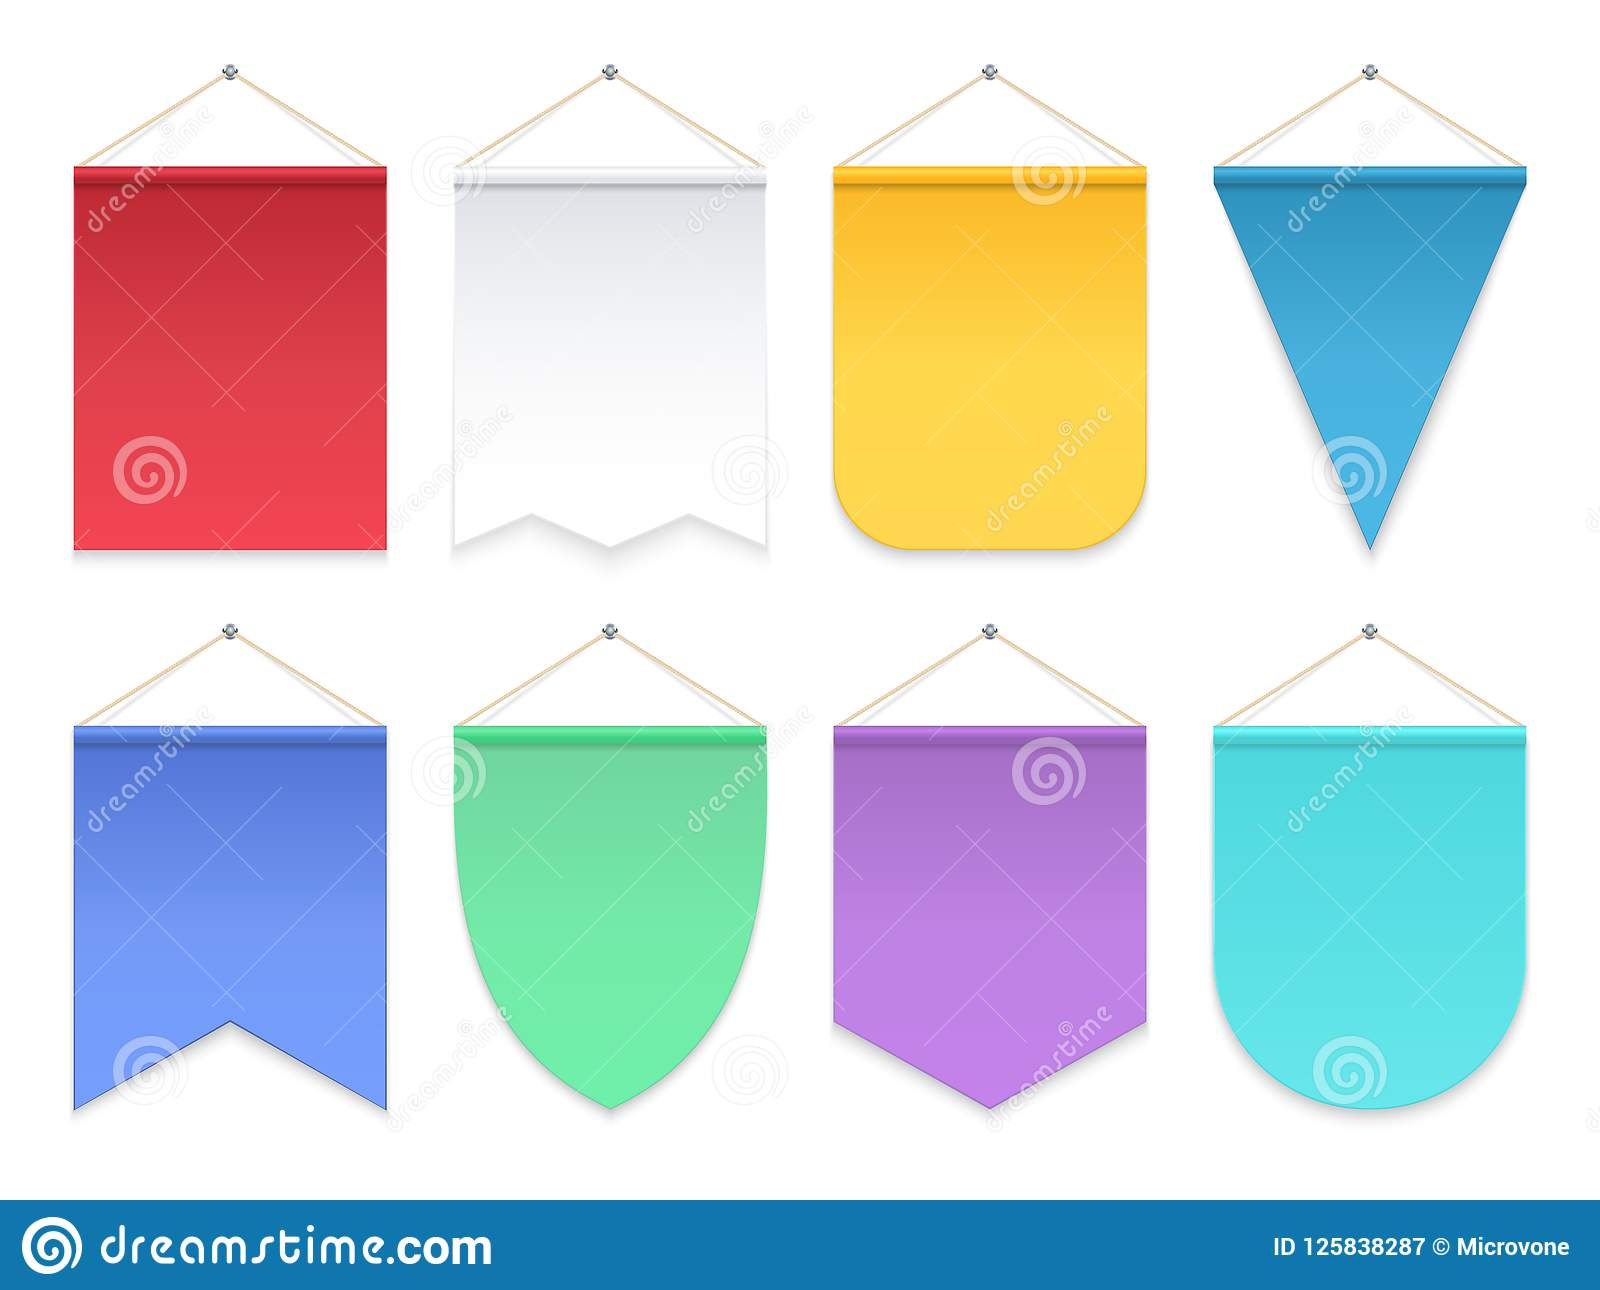 color pennant triangle hanging banners and flags fabric football